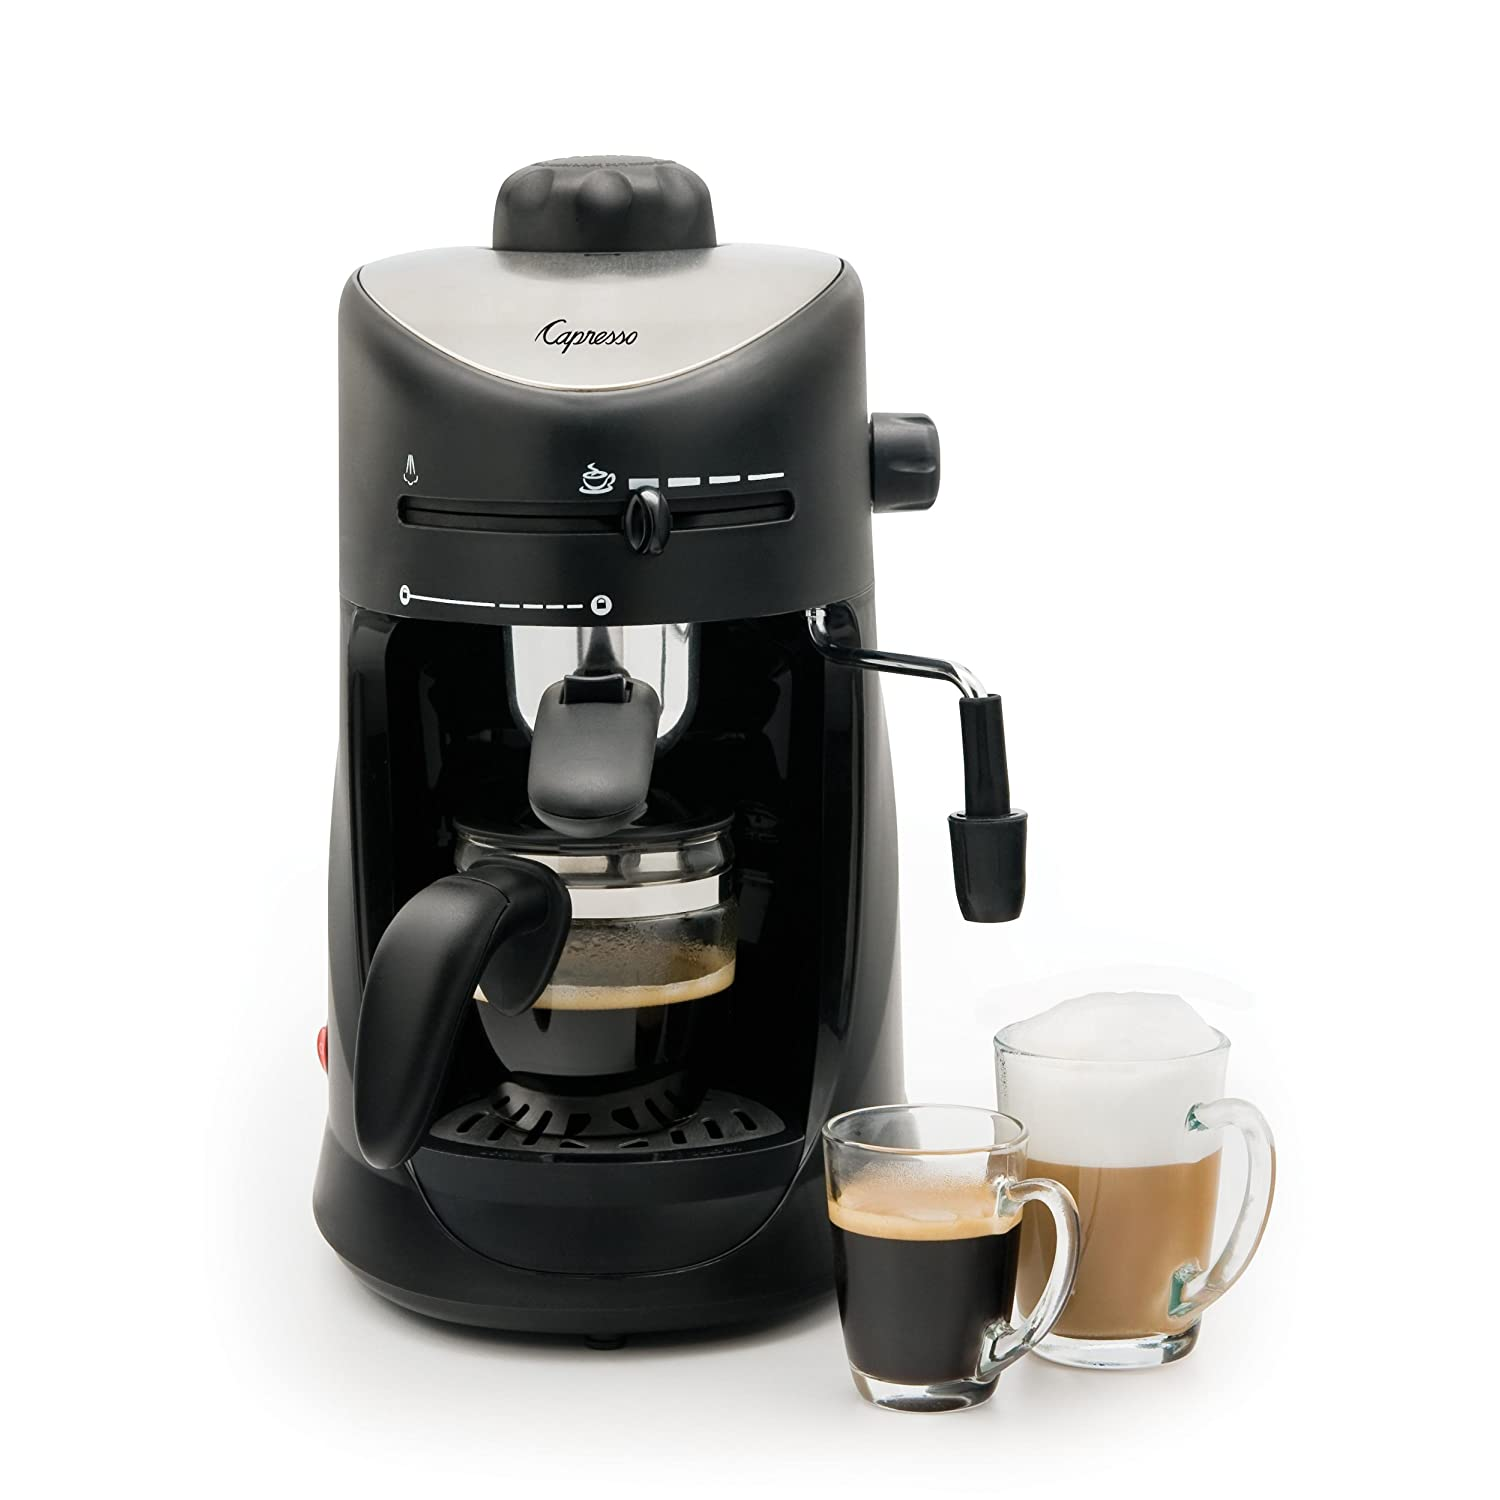 Capresso 303.01 4 Cup coffee maker